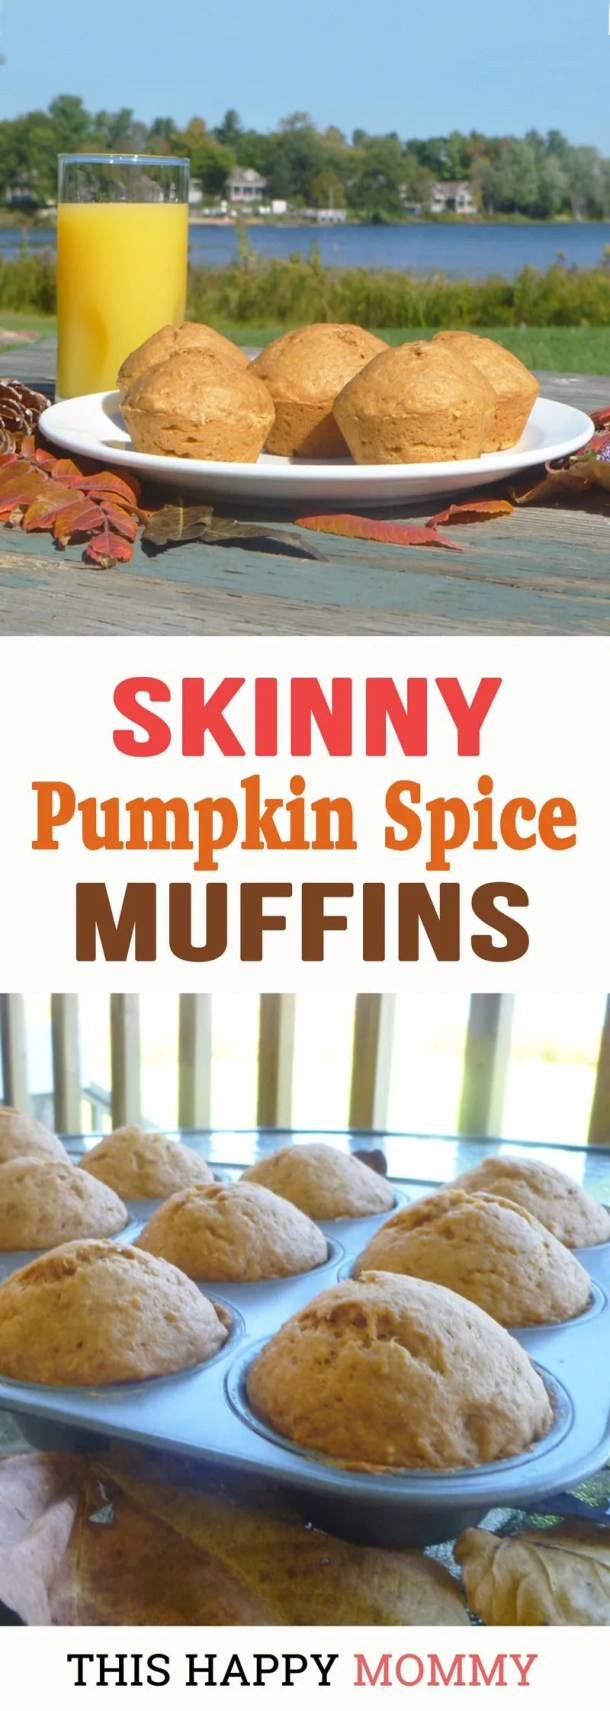 If you love fall flavoured foods, you'll love Skinny Pumpkin Spice Muffins. They're light, fluffy, and filled with a tasty pumpkin spice. You can enjoy them for breakfast time, snack time, or any time. | healthy breakfasts for families | clean eating breakfast on the go | healthy breakfast muffins | easy recipes for kids | #recipes #muffins #breakfast #fallfood | thishappymommy.com